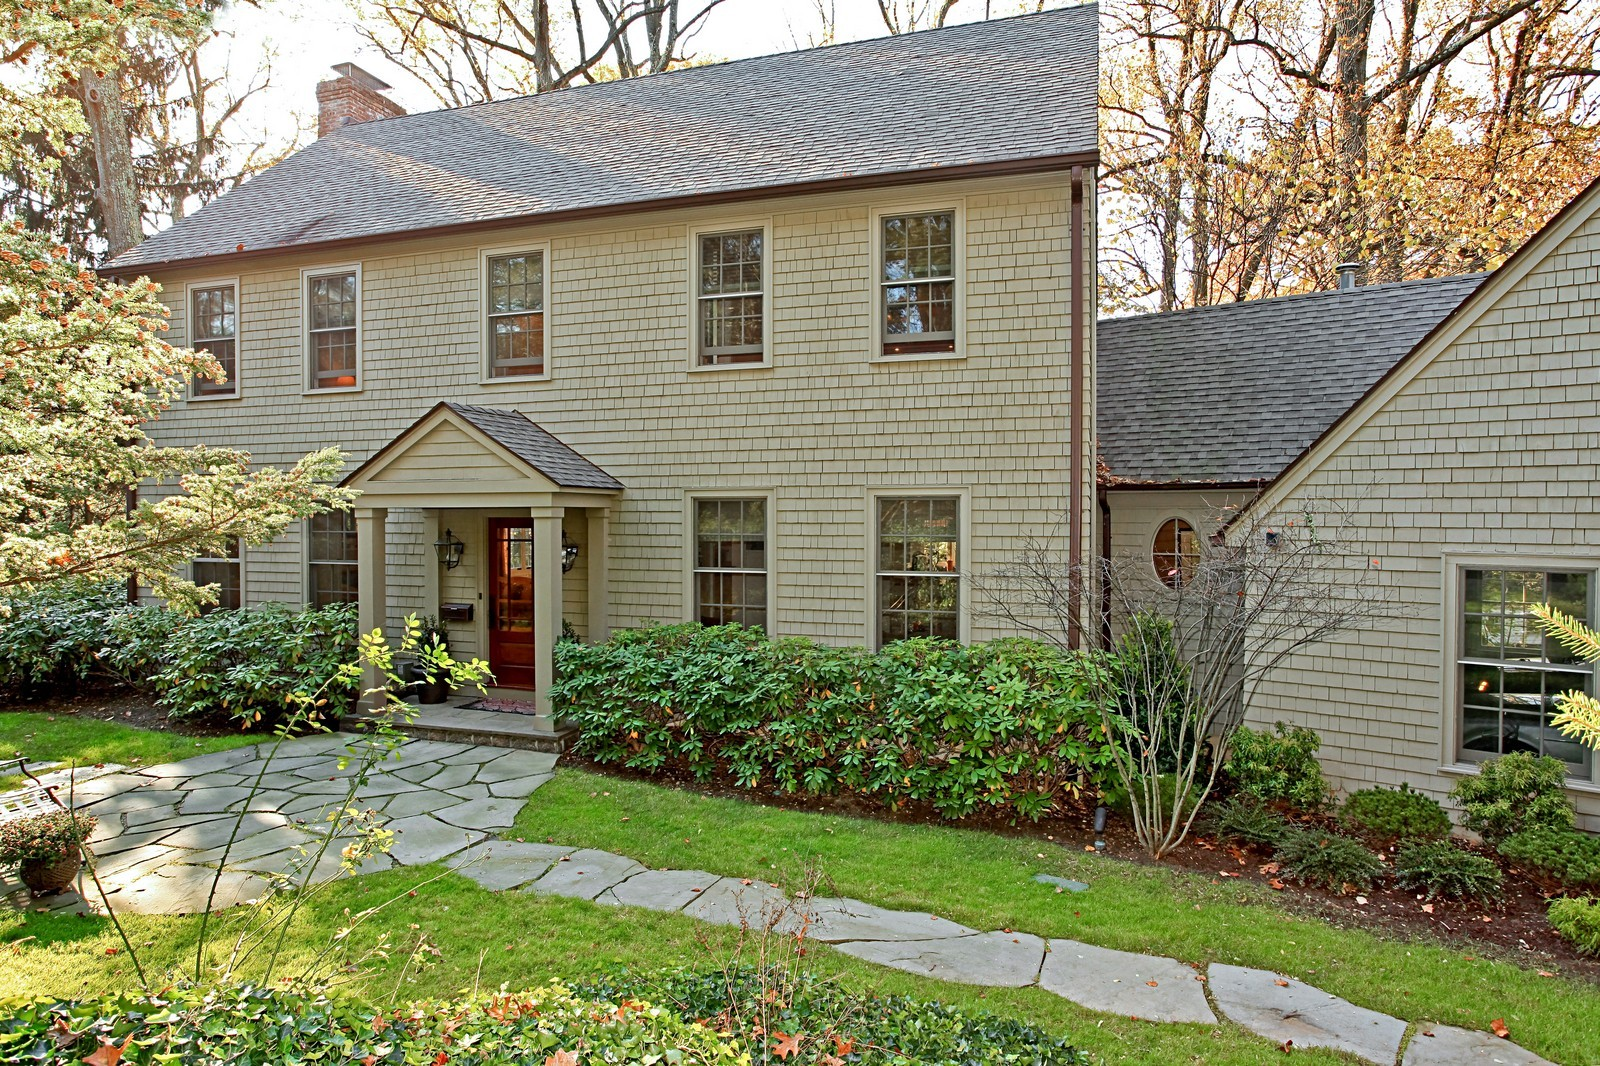 Real Estate Photography - 30 Hadden Rd, Scarsdale, NY, 10583 - Front View